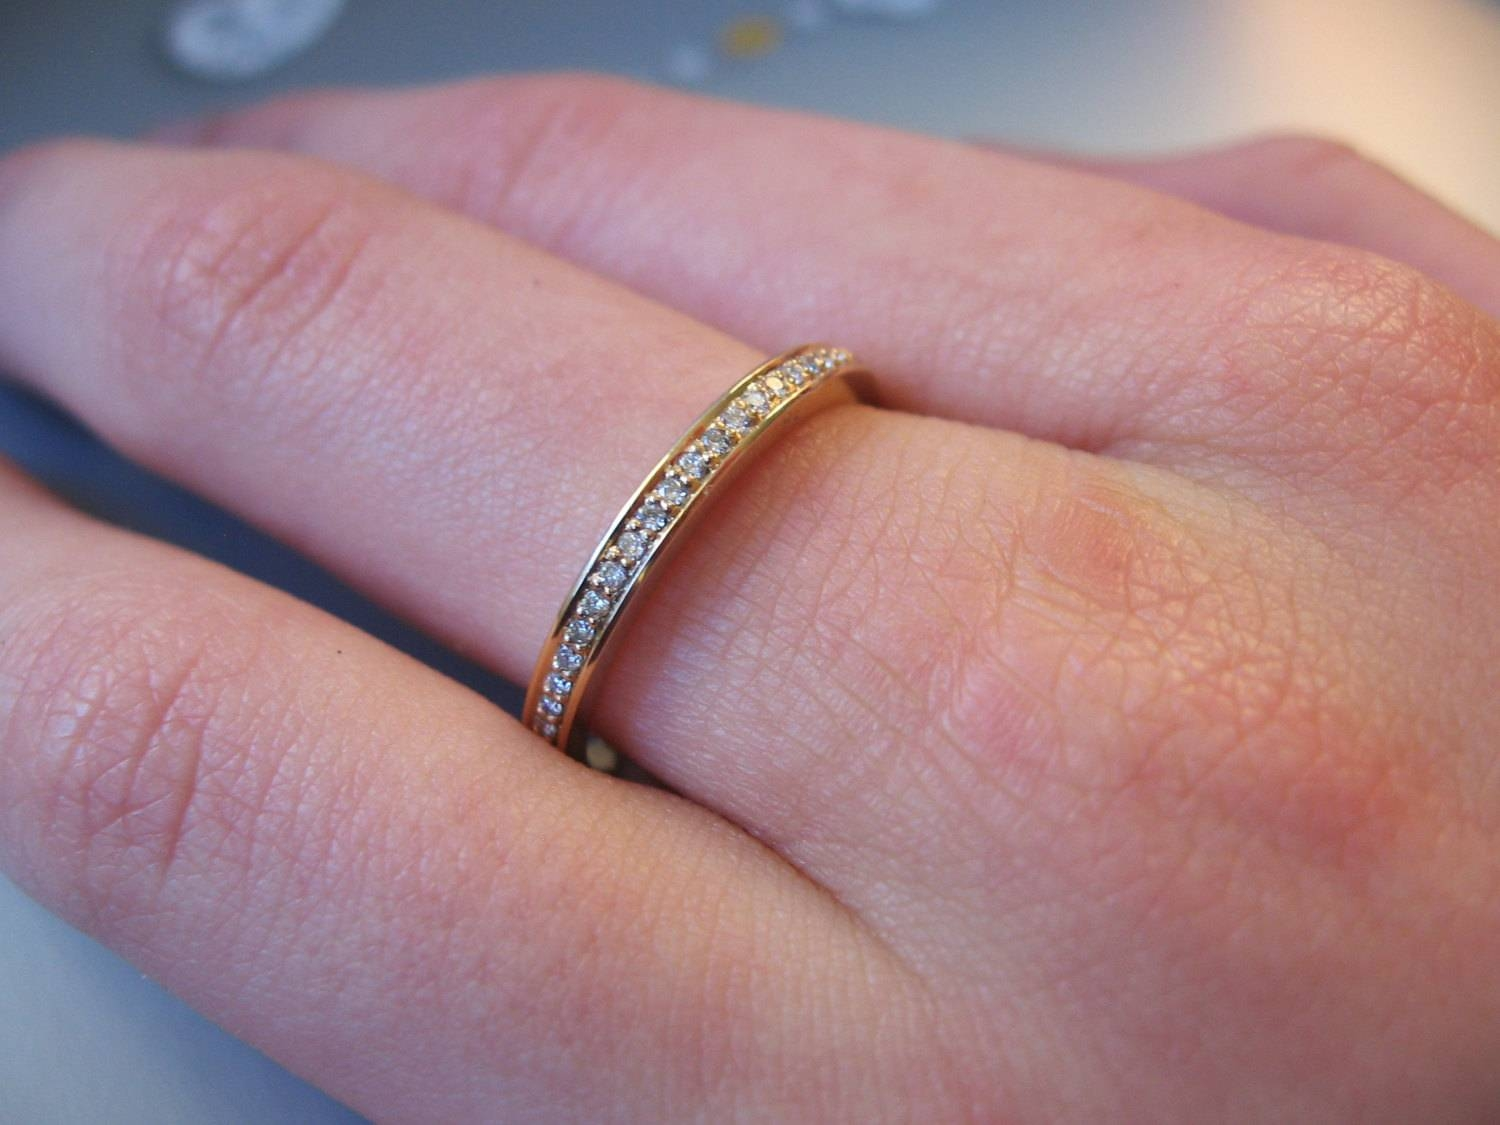 Micro Pave Diamond Eternity Ring 2Mm In 14K Gold, Handmade Diamond In Eternity Band Wedding Rings (Gallery 8 of 15)